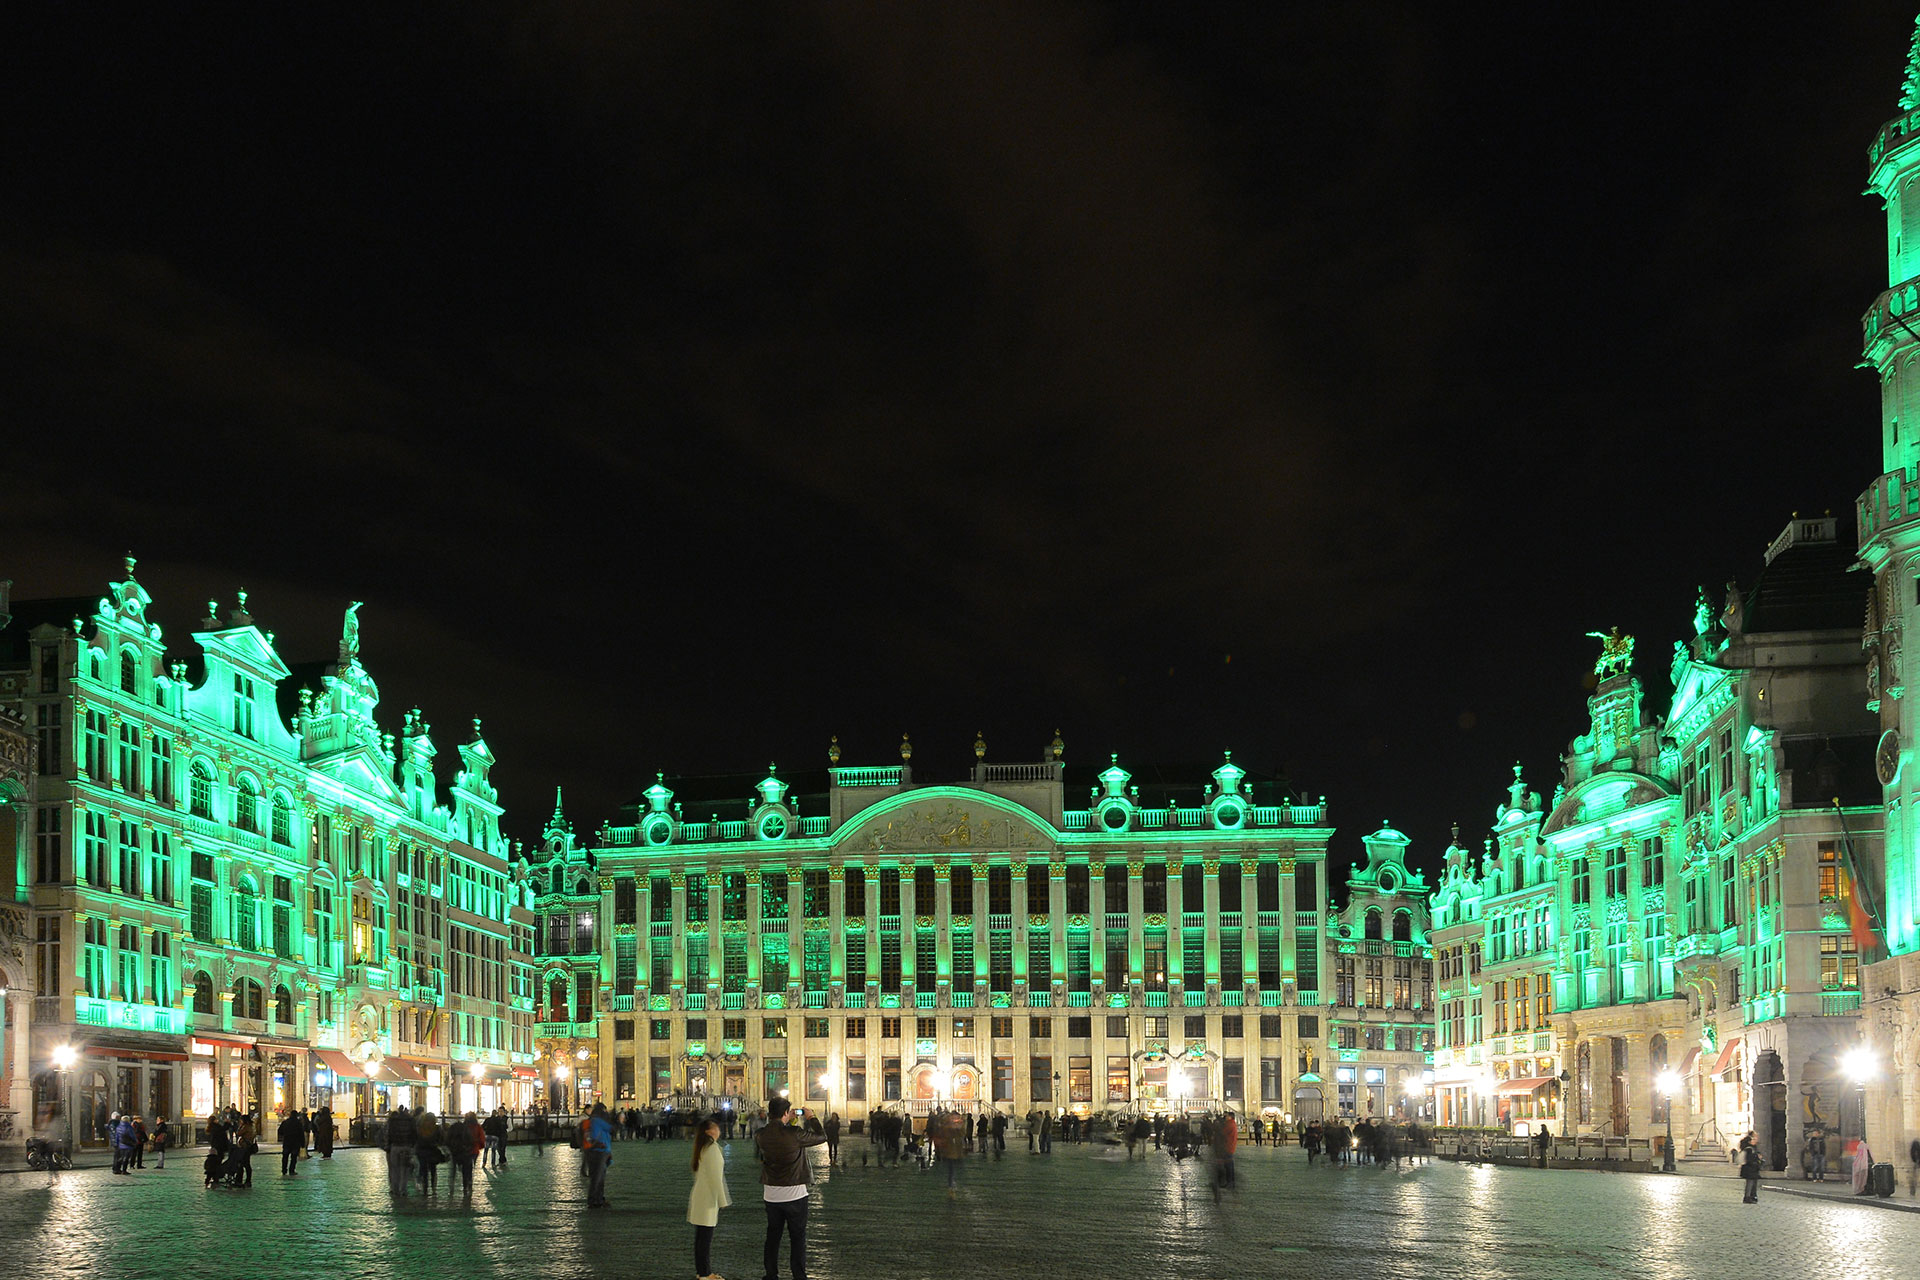 Grand Place in Brussels can be lit up in different colours to celebrate different events, like green on Saint Patricks Day